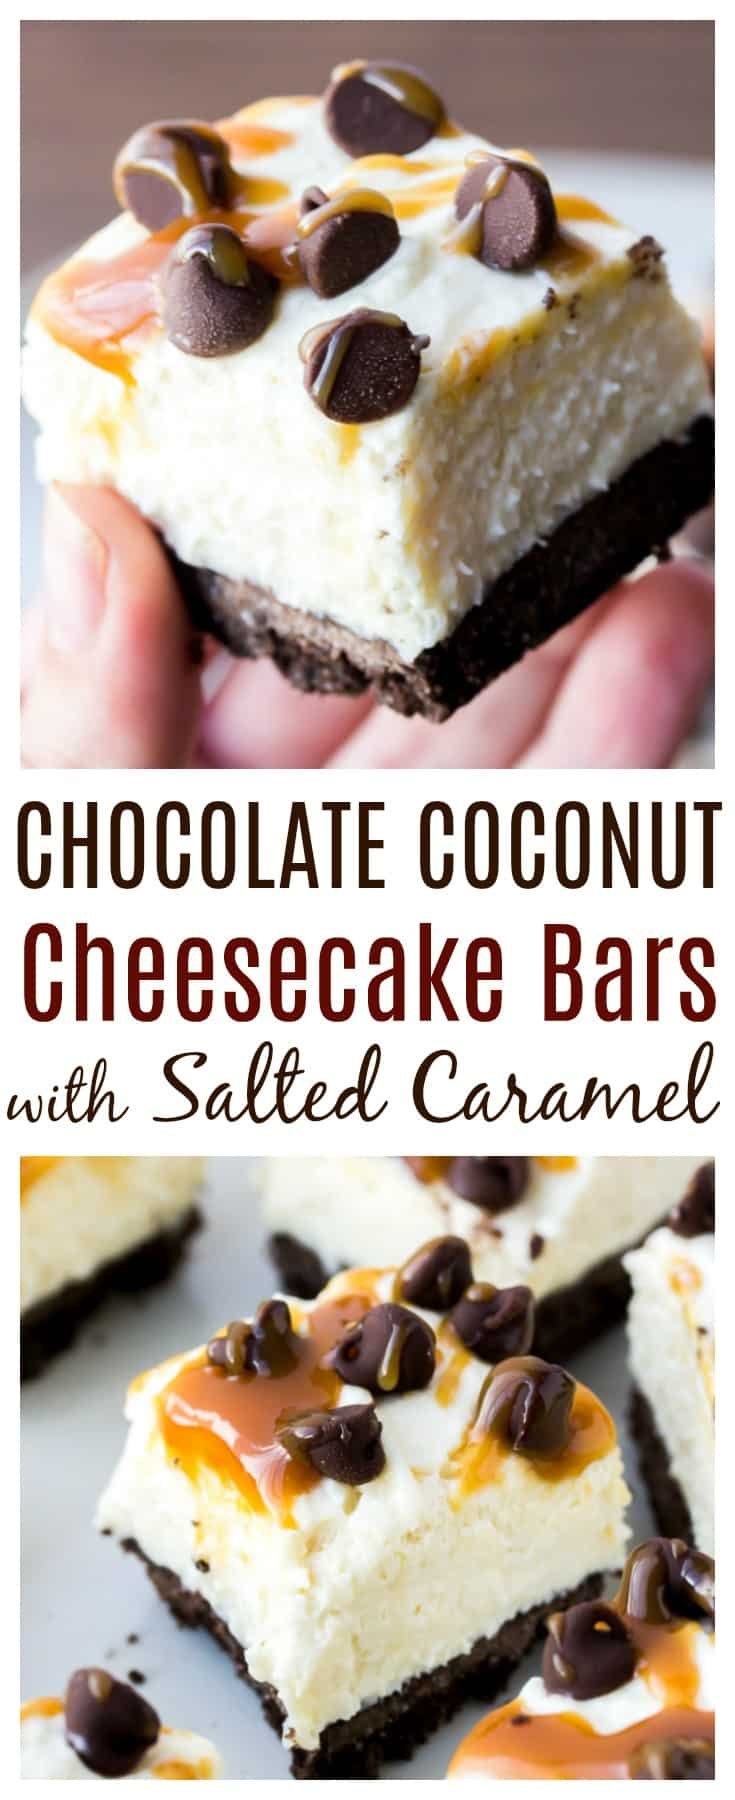 Coconut Cheesecake Bars are an easy-to-make decadent treat! Creamy no-bake coconut cheesecake sits on top of a chocolate graham cracker crust. Sprinkled with chocolate chips and drizzled with salted caramel sauce, these bars are simply delicious!